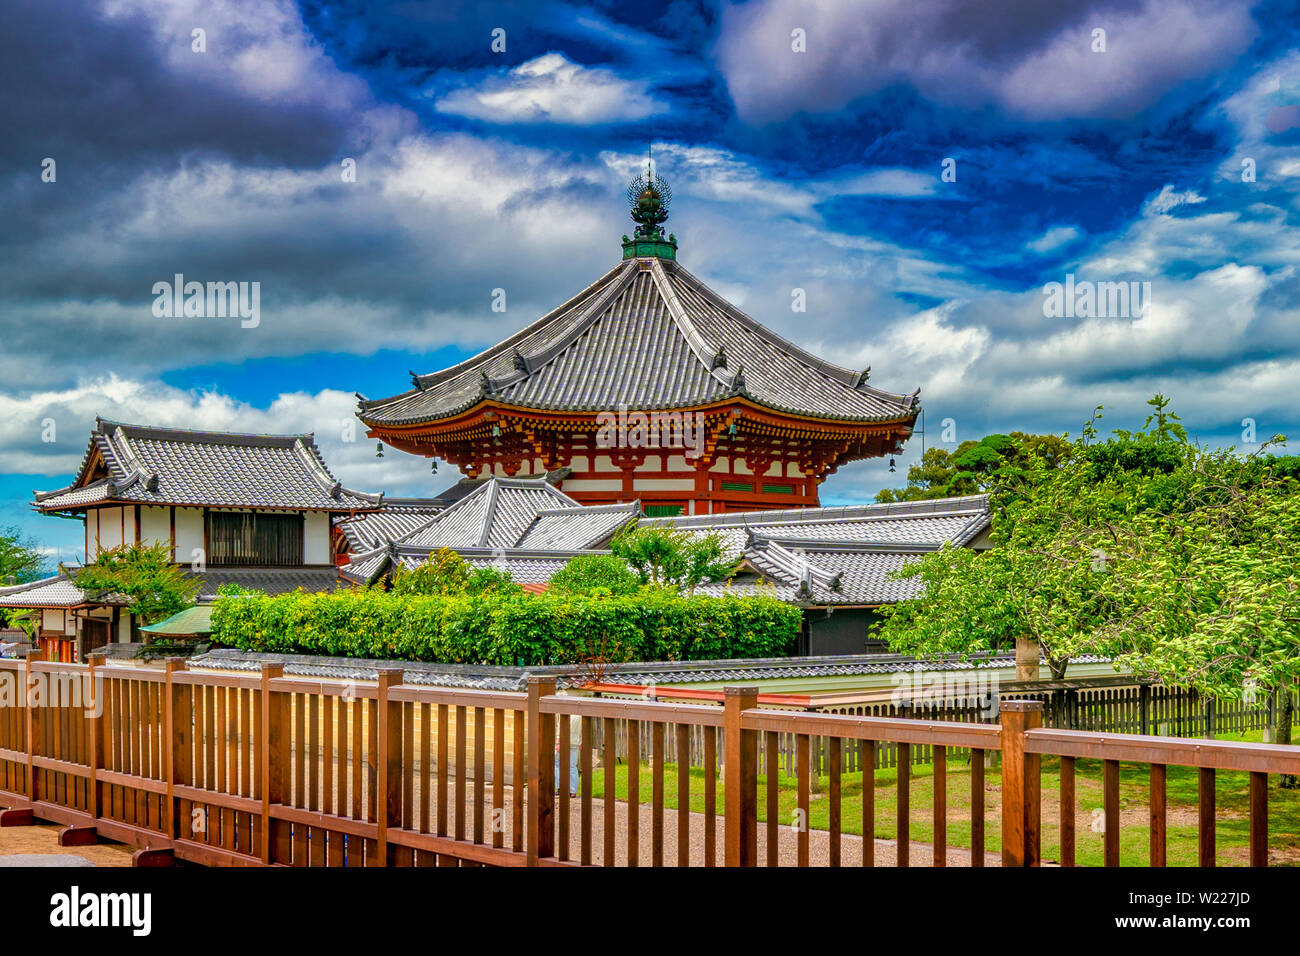 Kōfuku-ji Temple. A complex of Buddhist temple halls & pagodas, withan on-site museum showcasing national treasures. Stock Photo